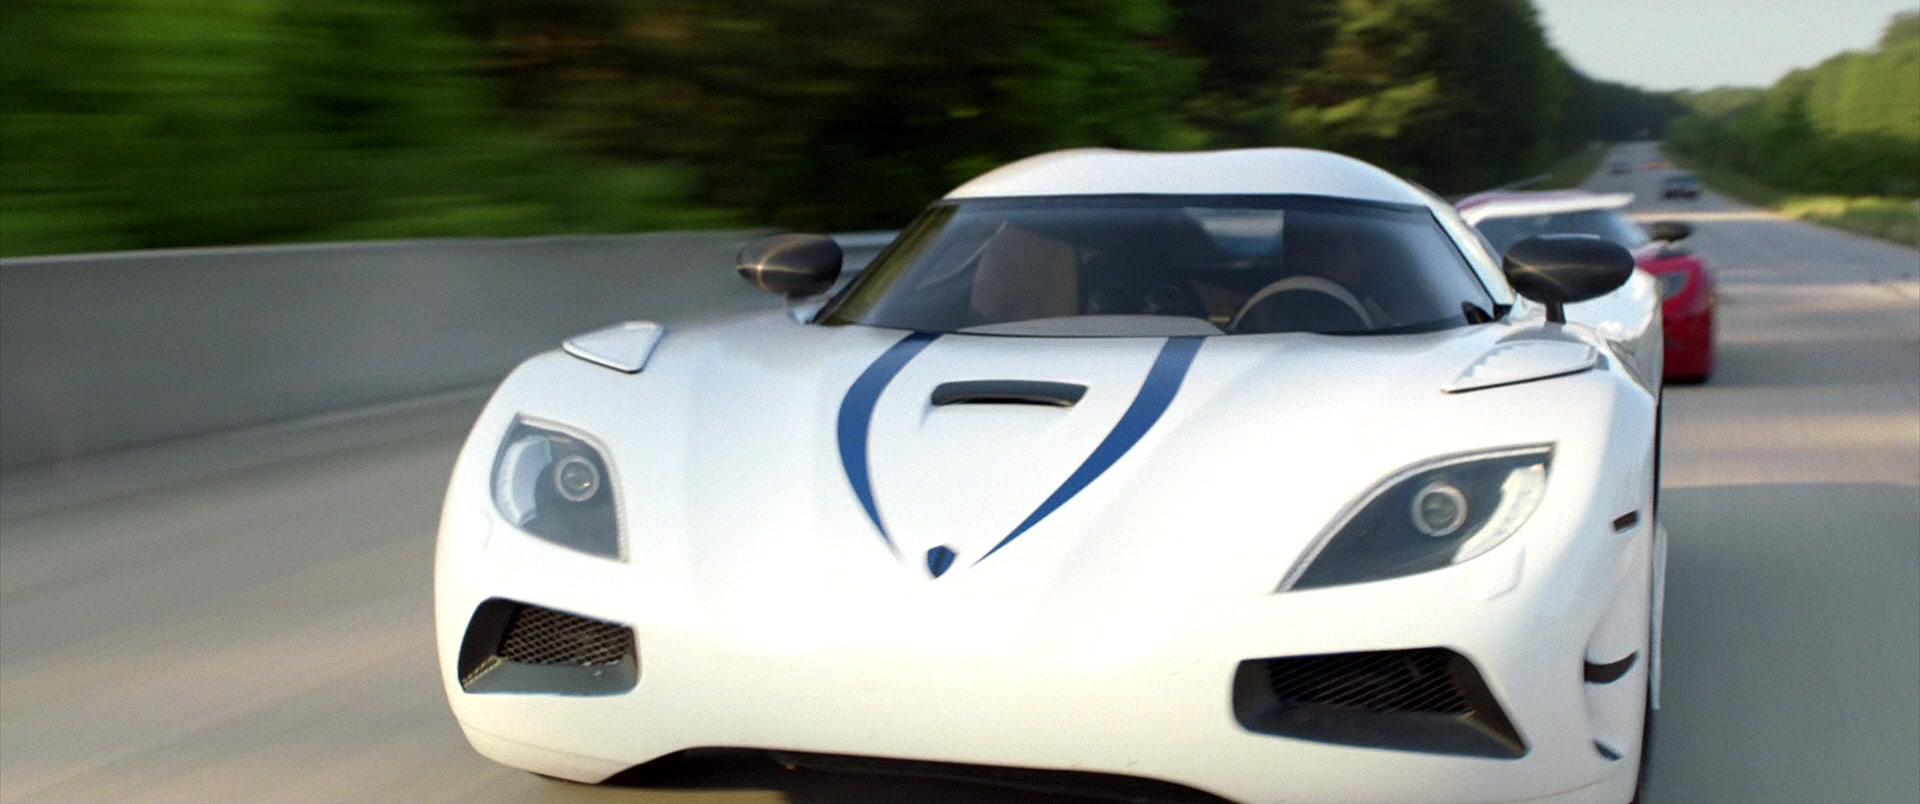 Koenigsegg Agera R White Sports Car Driven By Harrison Gilbertson